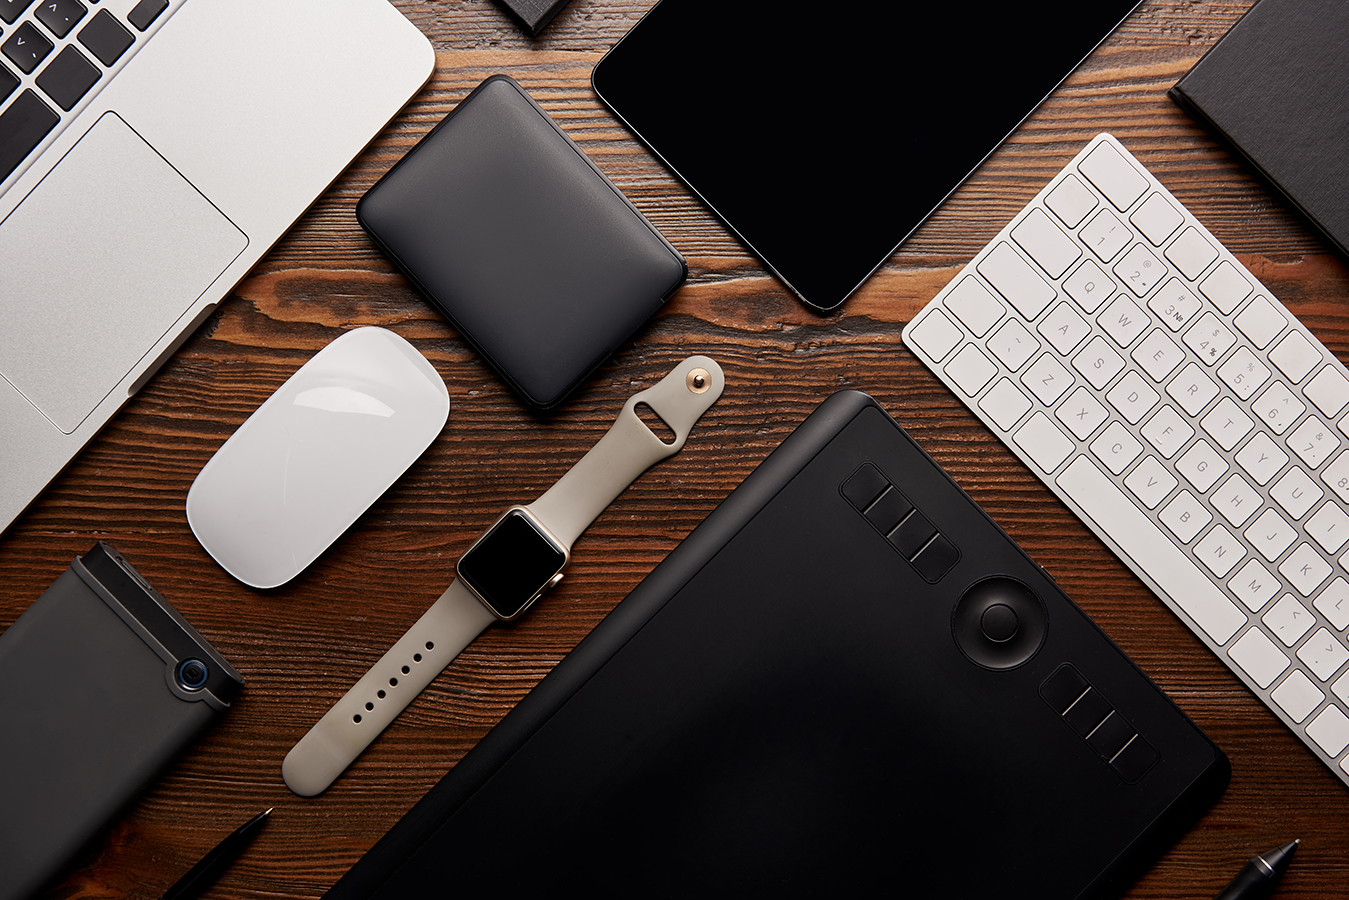 6 new office gadgets to increase your productivity